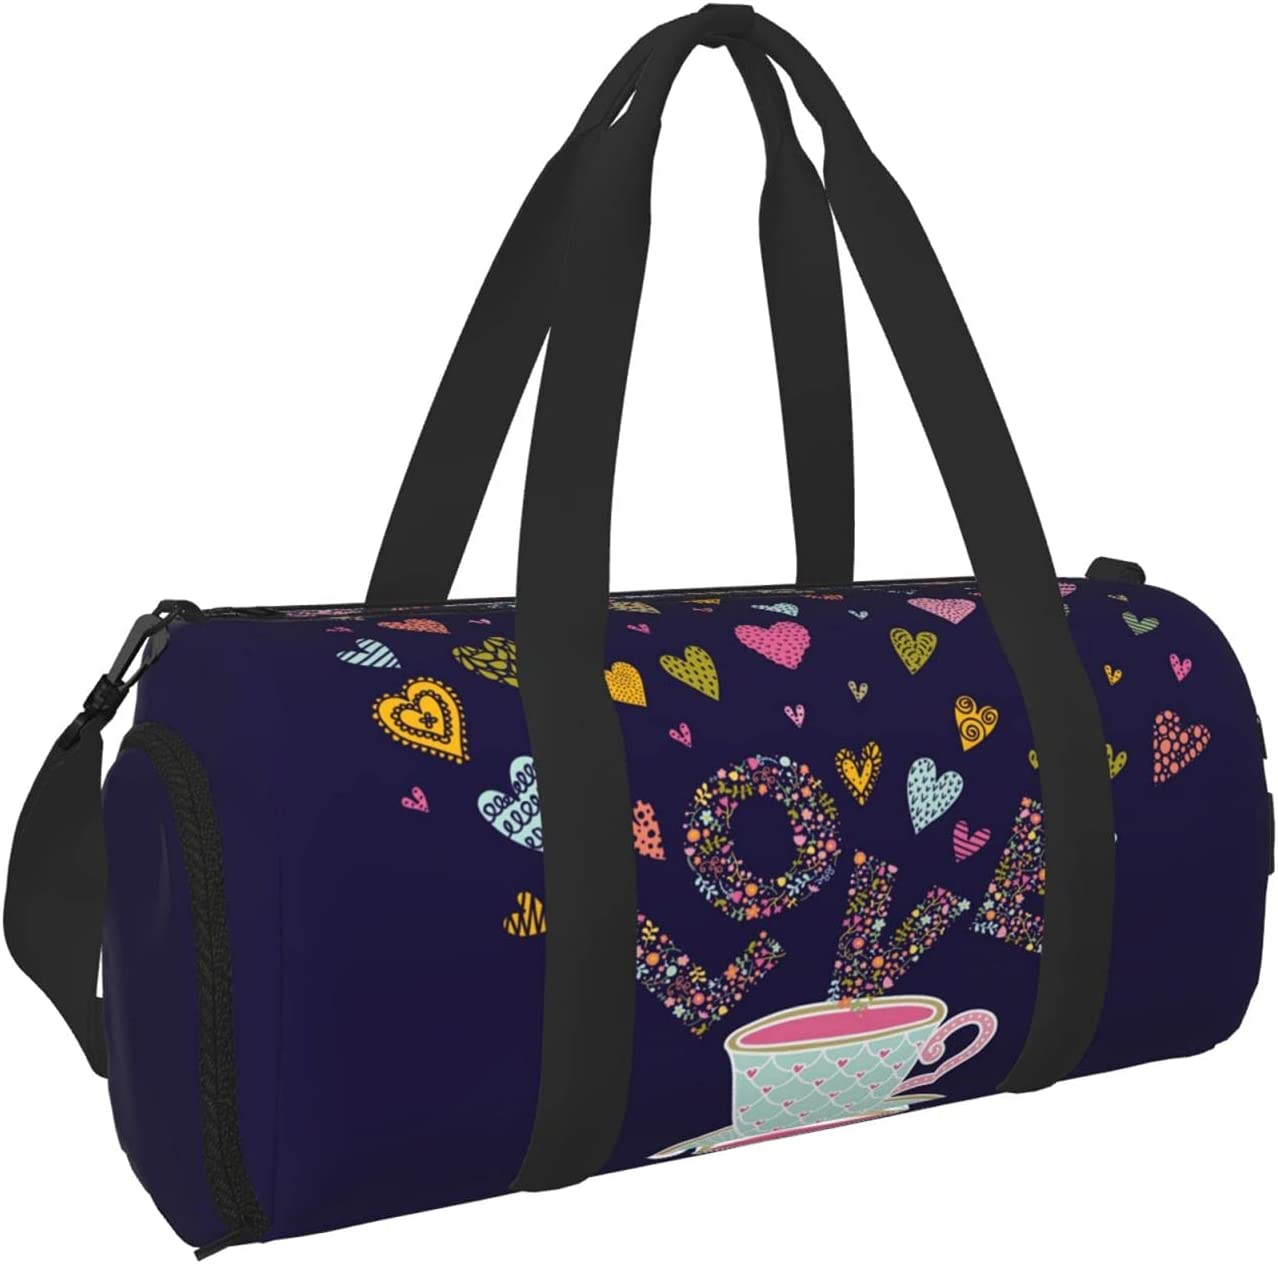 Timeergy Tea Cup Love Clearance SALE Limited time Hearts Gym Carry Travel Bags Bag On Duffel Ranking TOP9